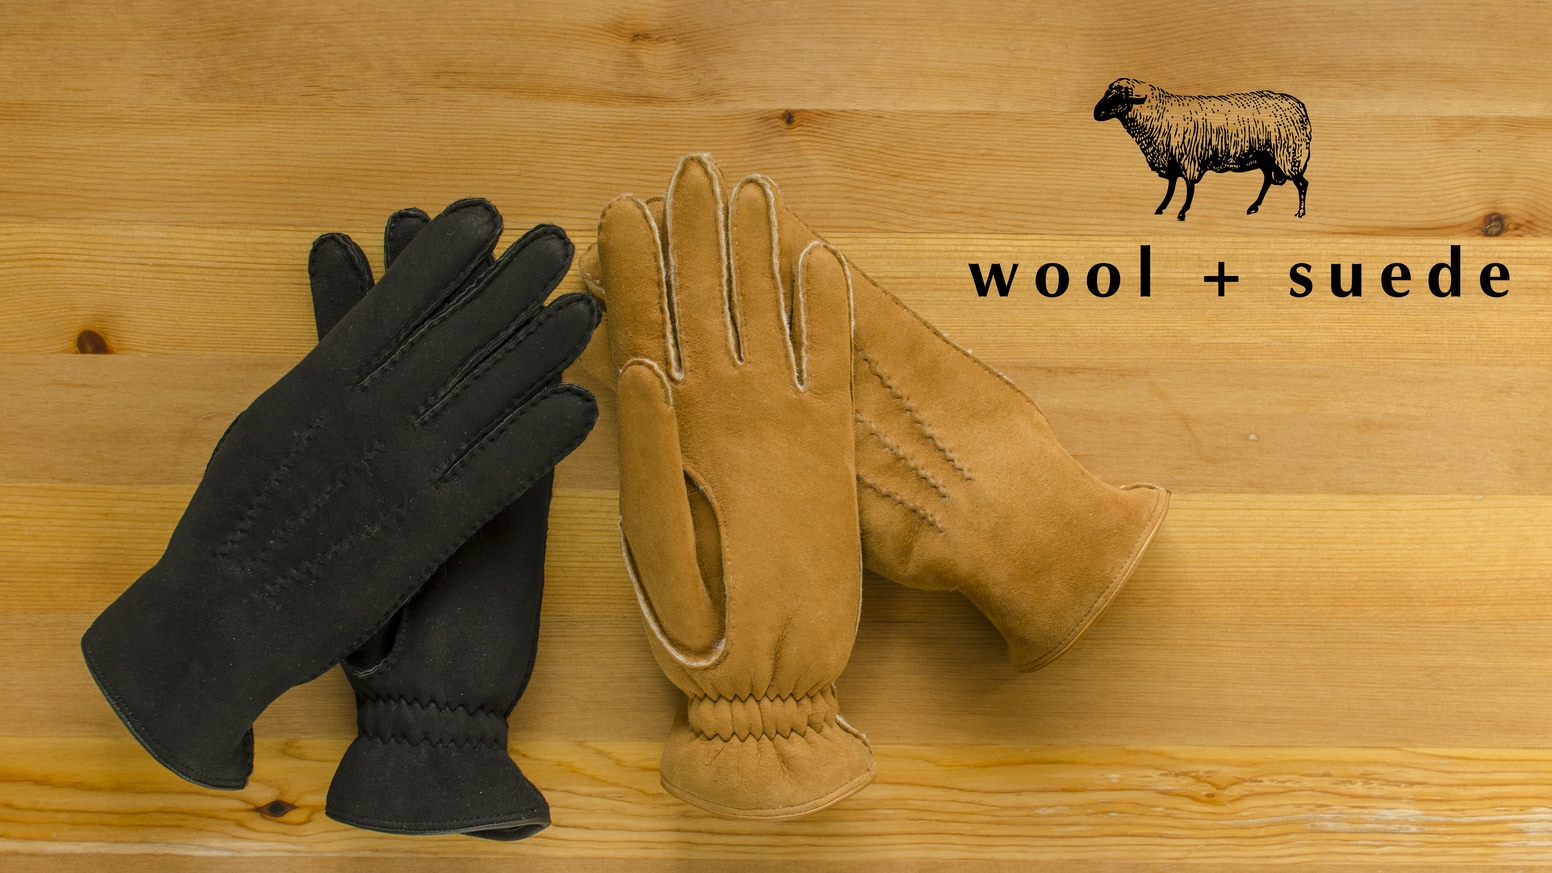 wool + suede | redefining warm and stylish winter gloves for the modern man